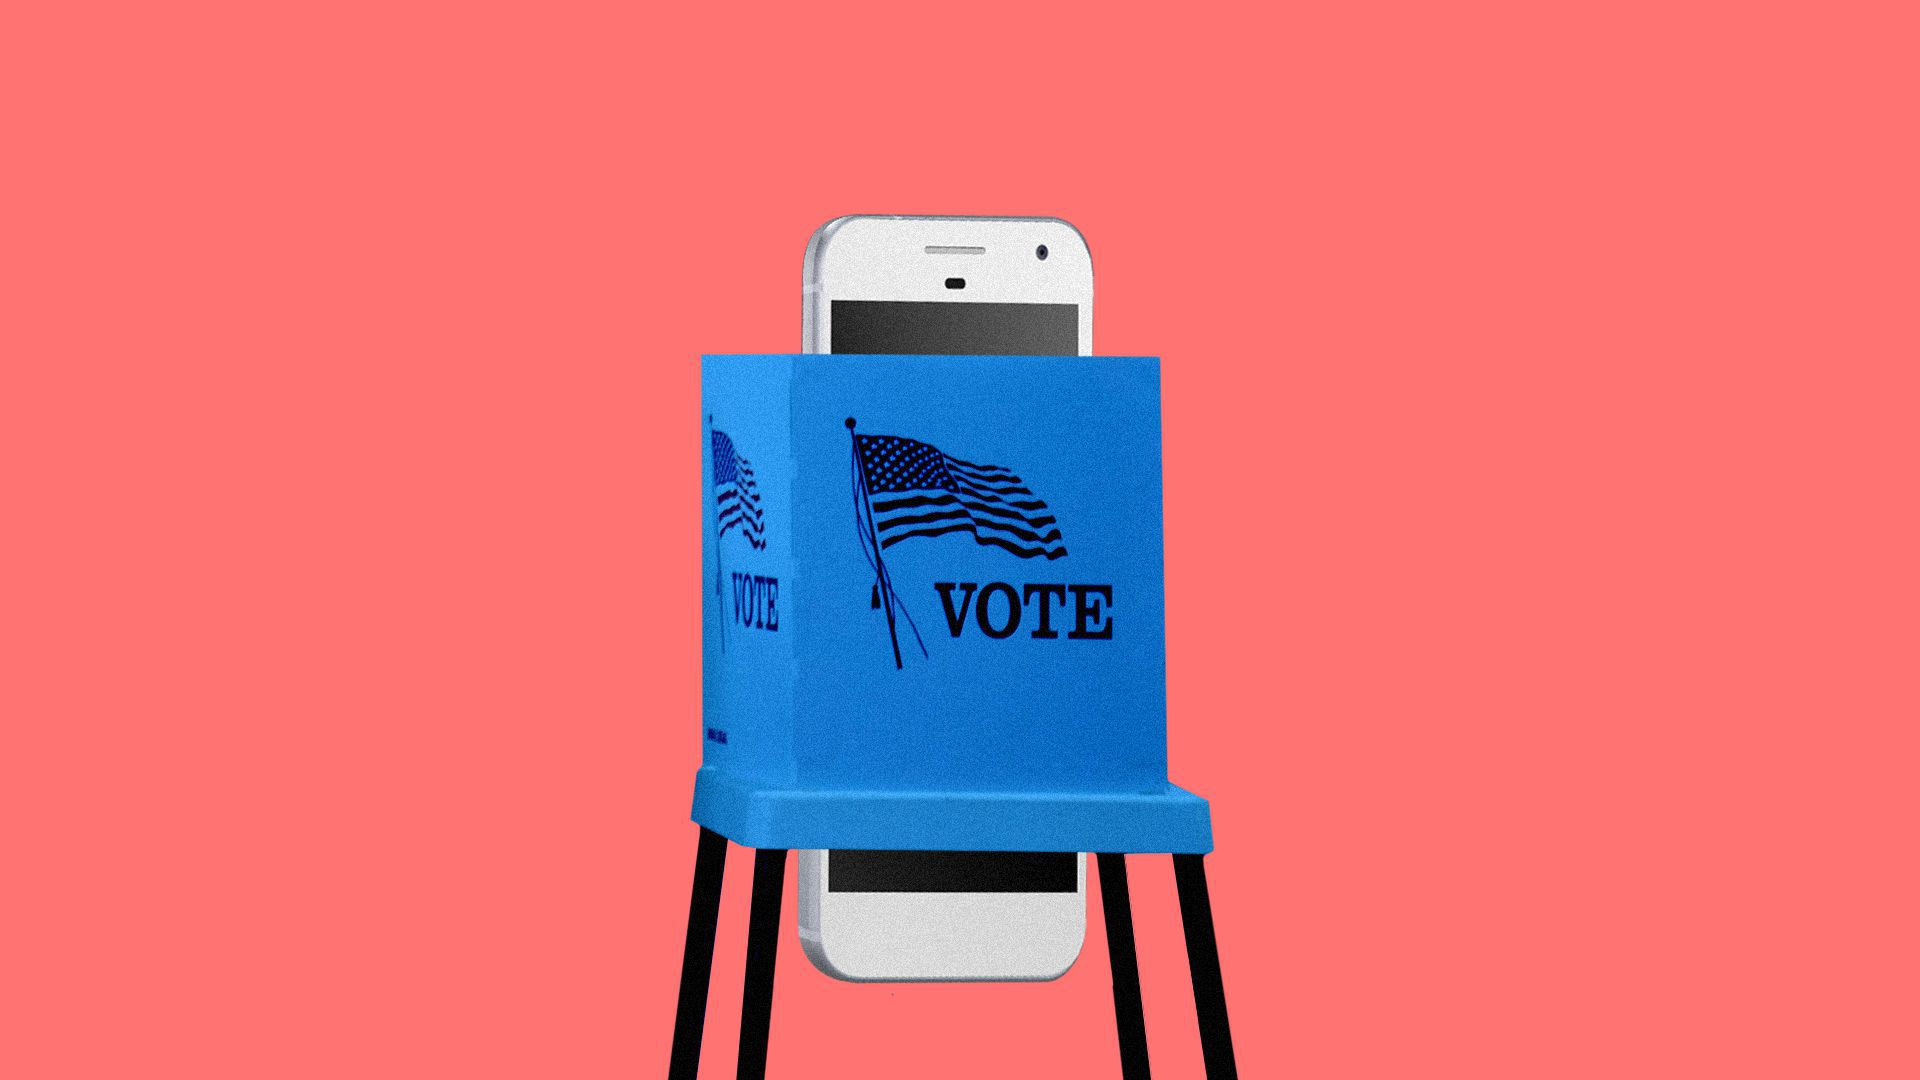 An illustration of a smartphone in a voting booth